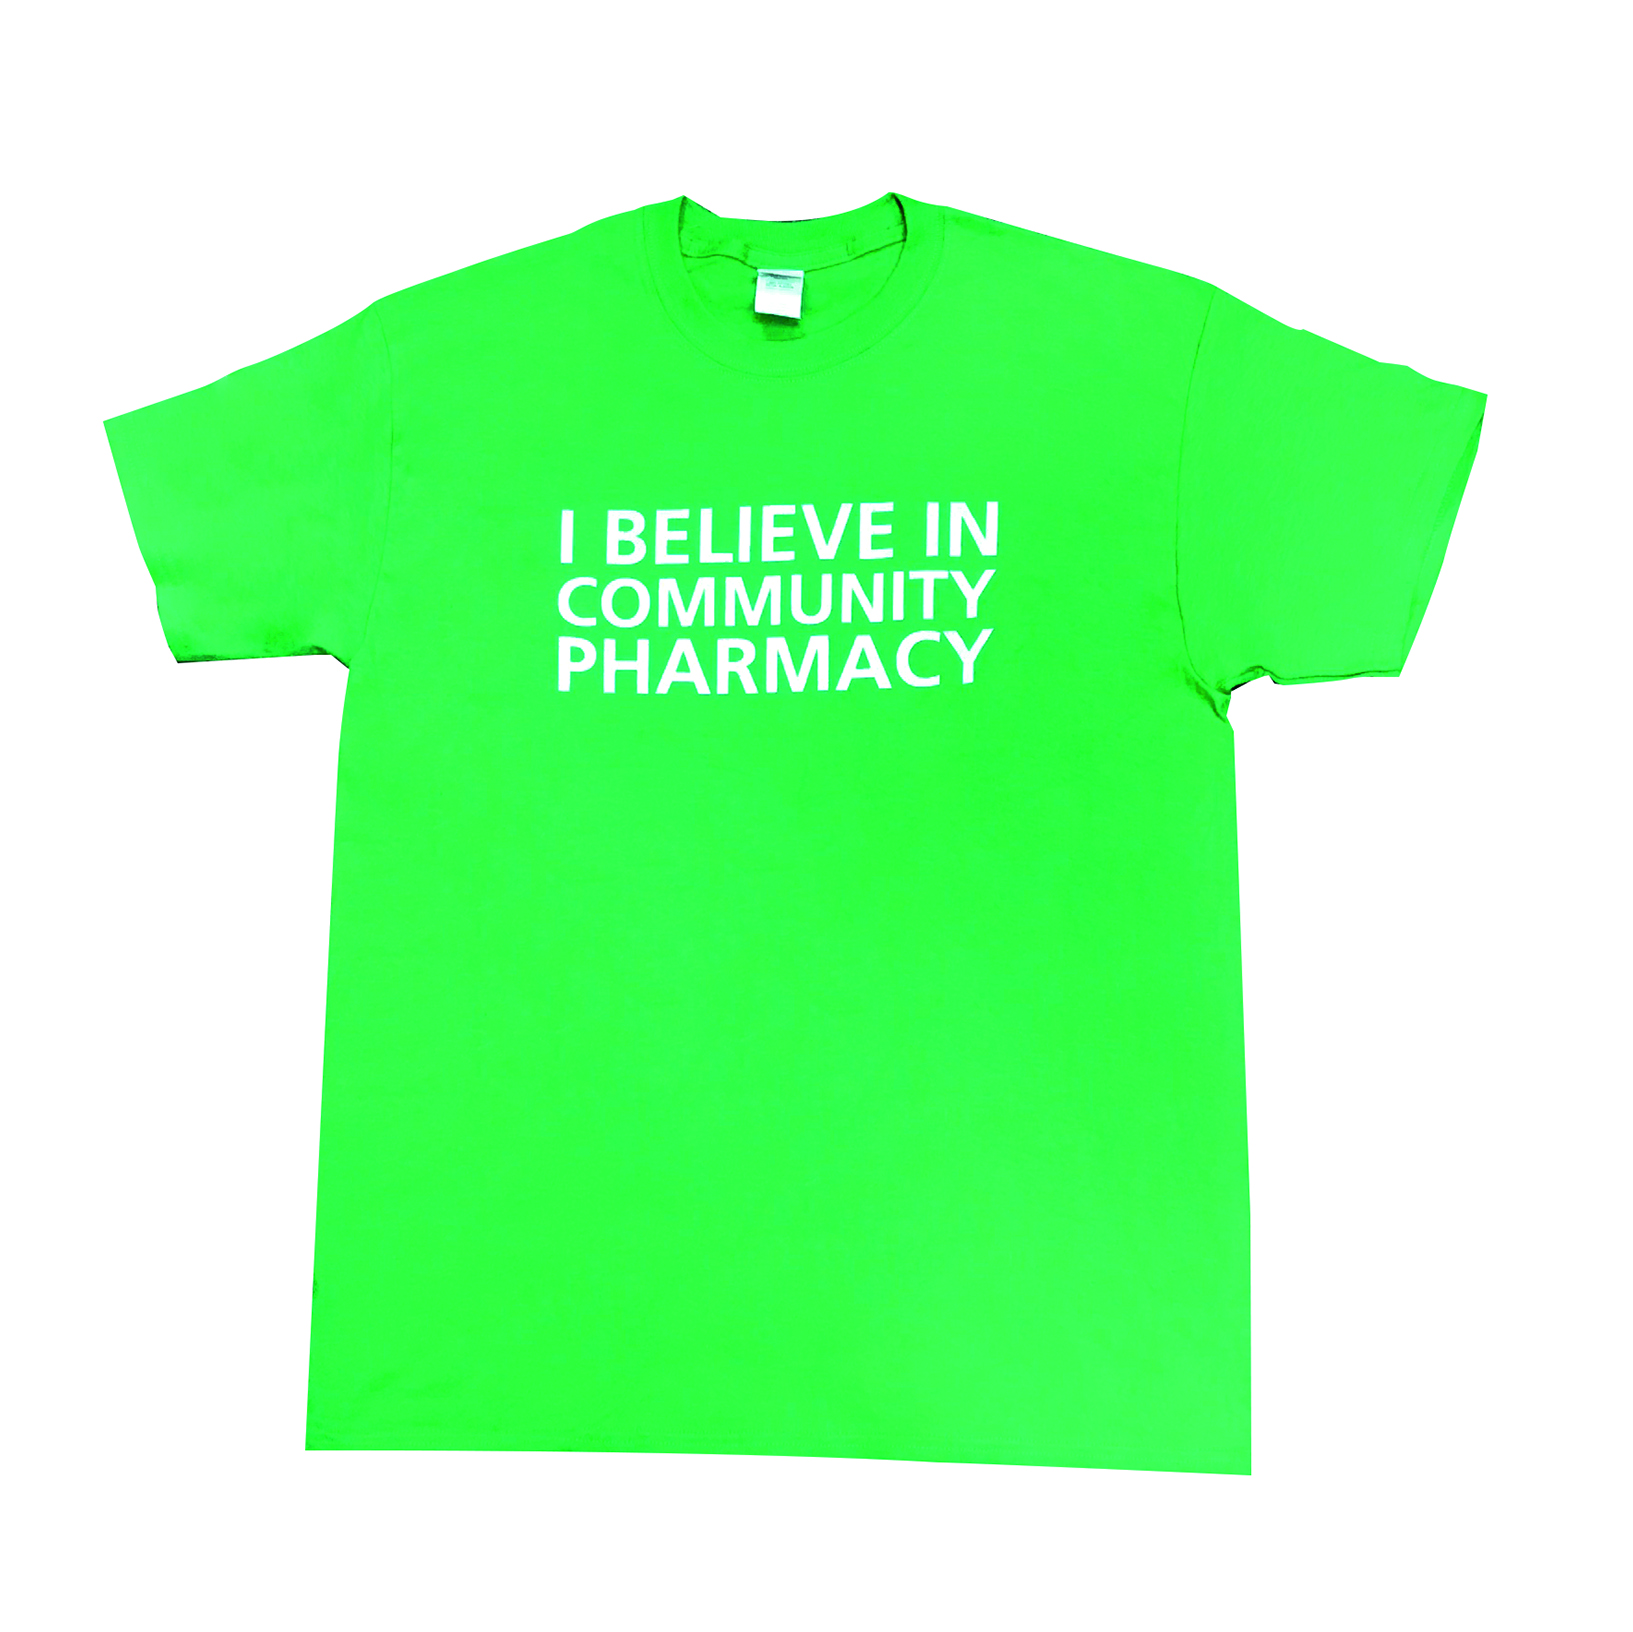 I BELIEVE IN COMMUNITY PHARMACY! T-Shirt